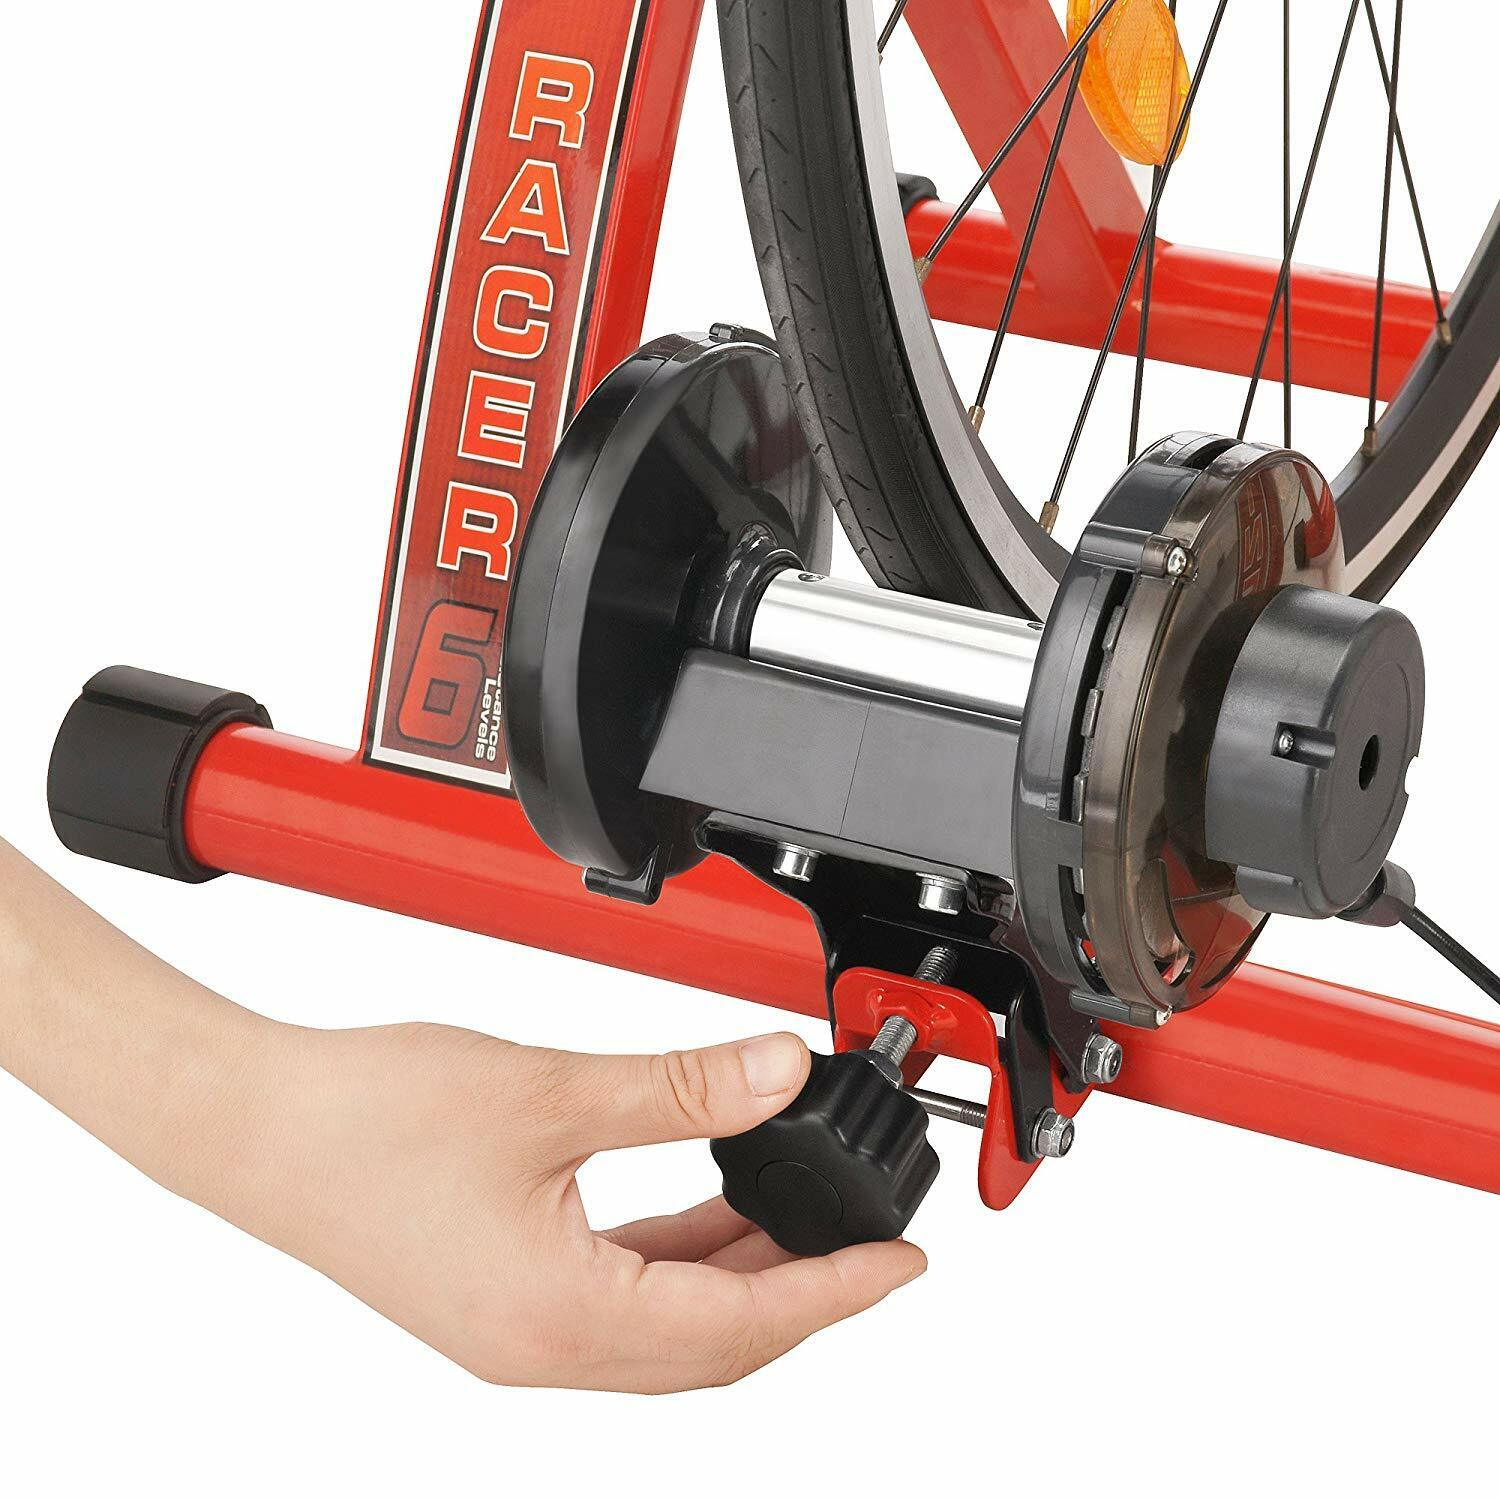 1113 RAD Cycle Products Max Racer 7 Levels of Resistance Por